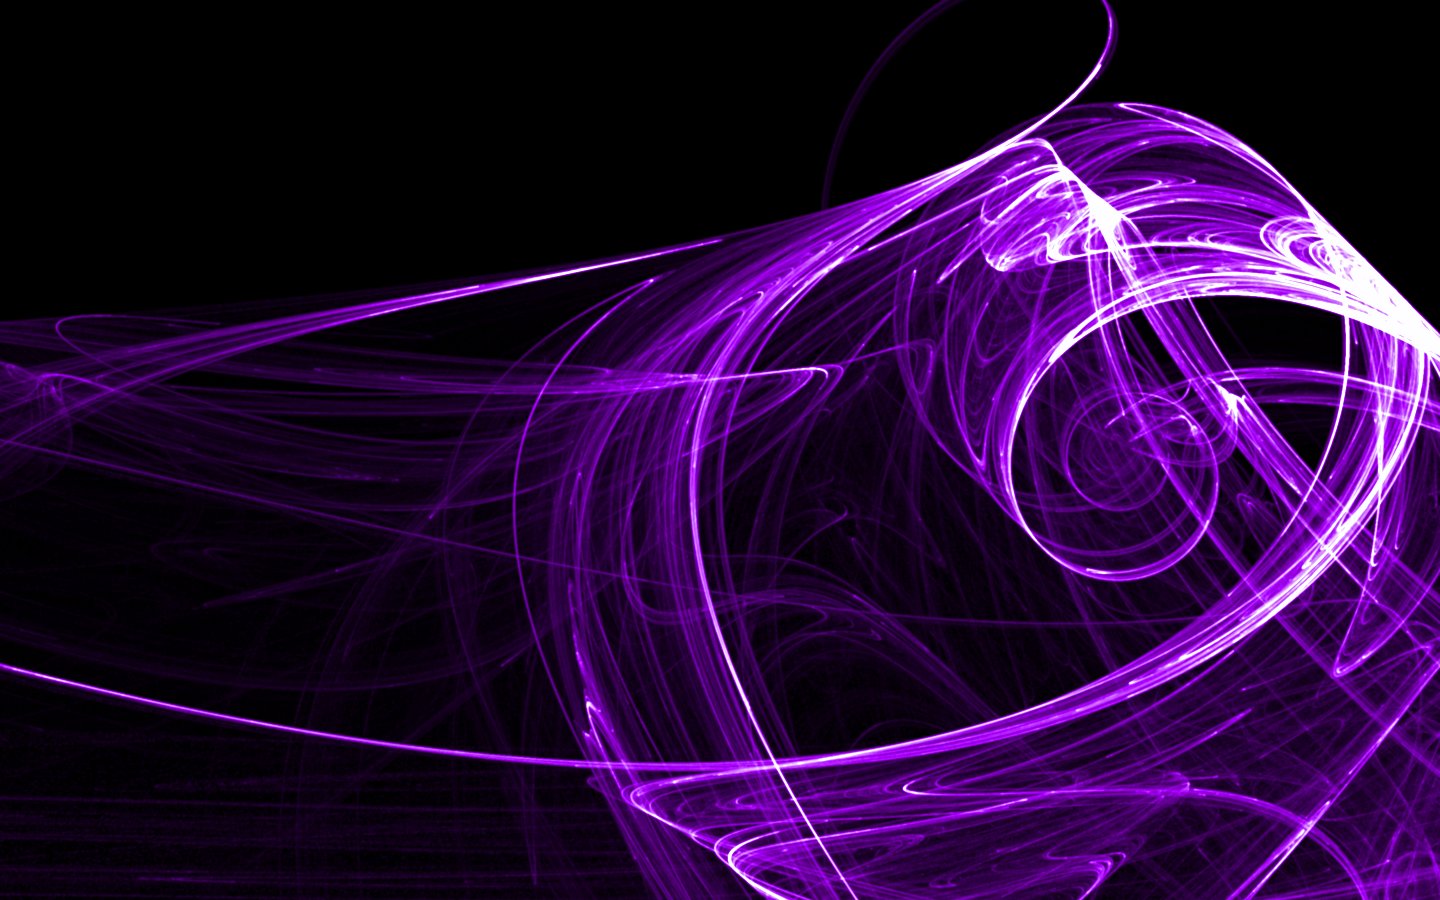 Amazing Purple Abstract Art Wallpaper